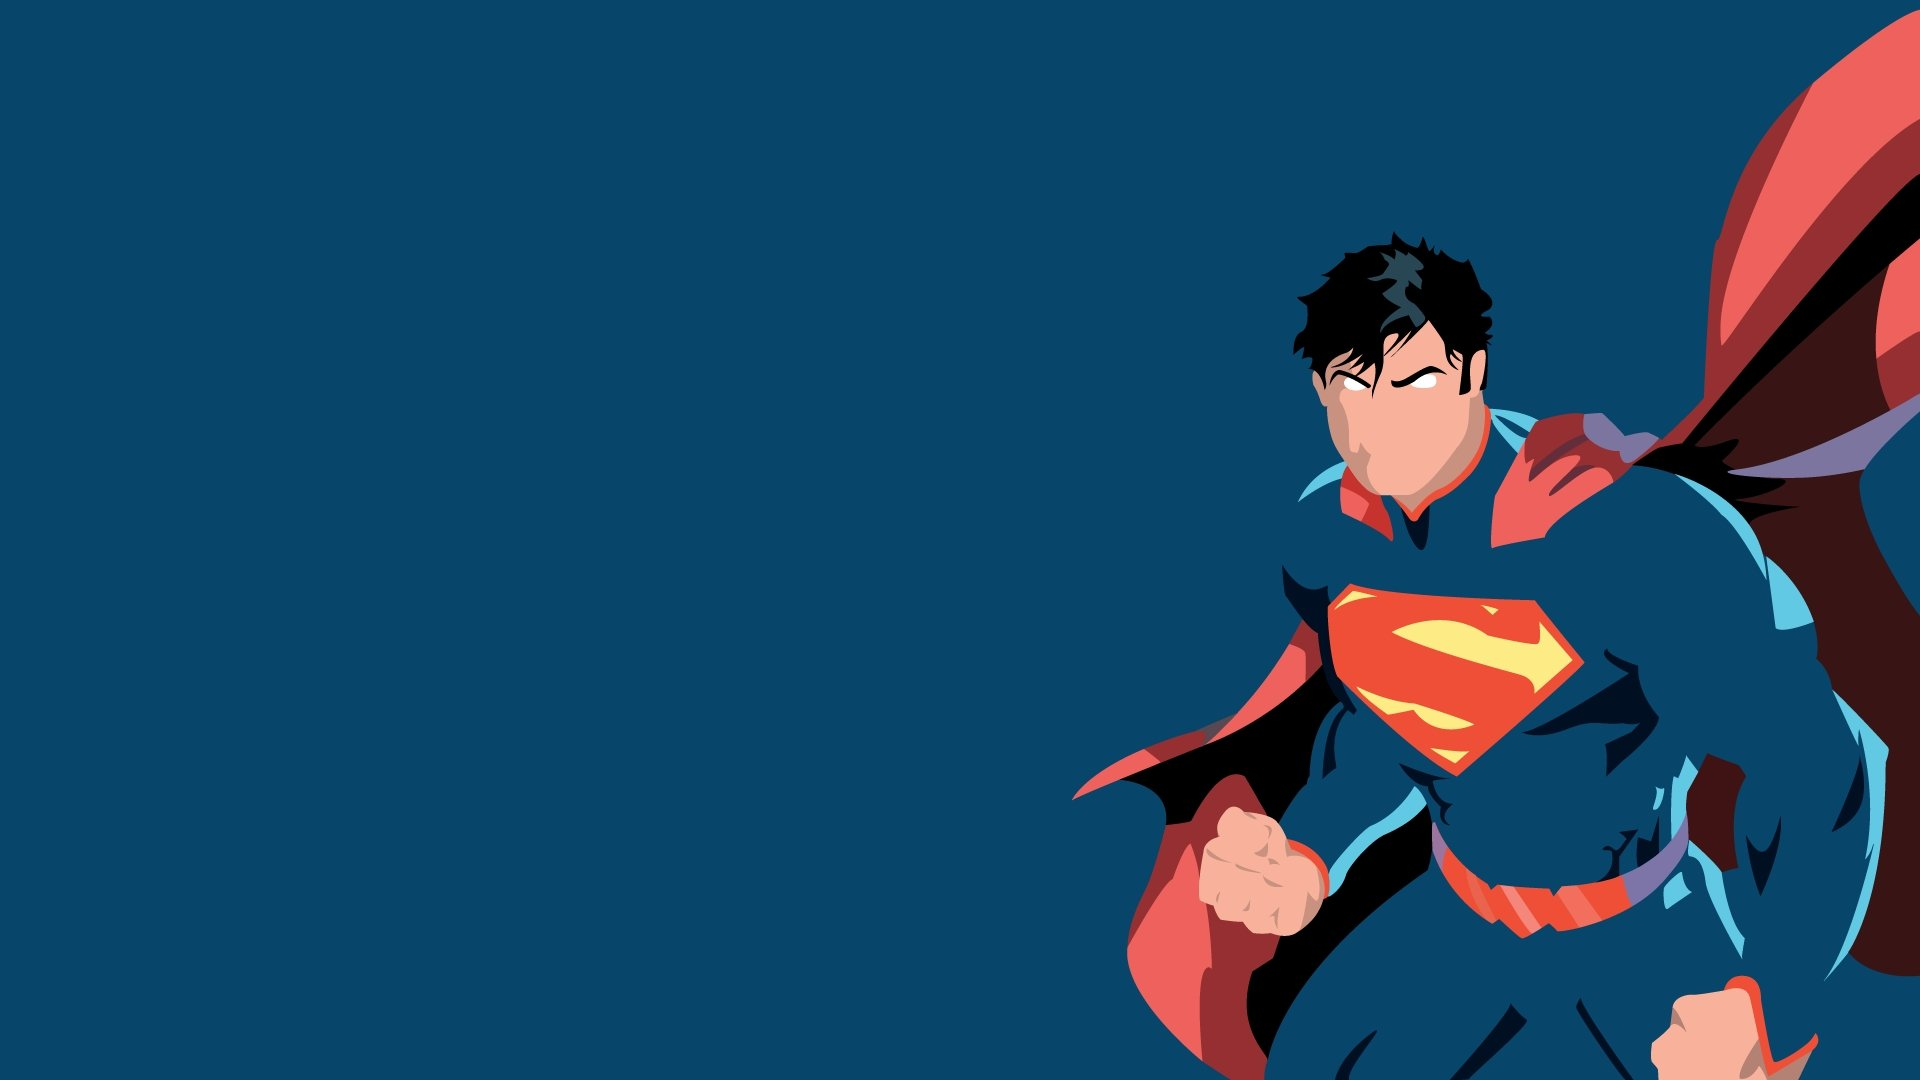 High Resolution Superman Hd 1080p Wallpaper Id 456489 For Desktop